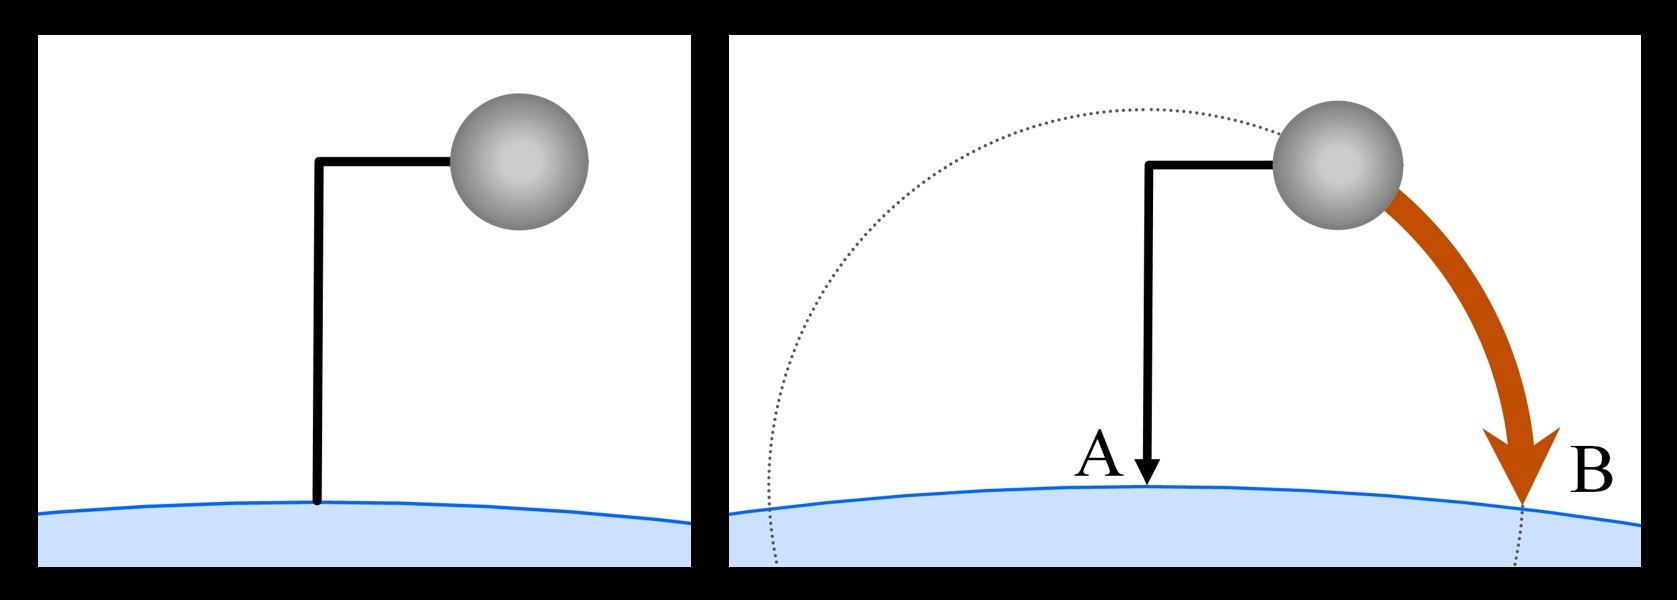 Left—An iron ball attached to an L-shaped rod, buried in the Earth. Right—When the rod is hinged at Earth's surface (A), the ball falls in a circular path and strikes the ground at B.